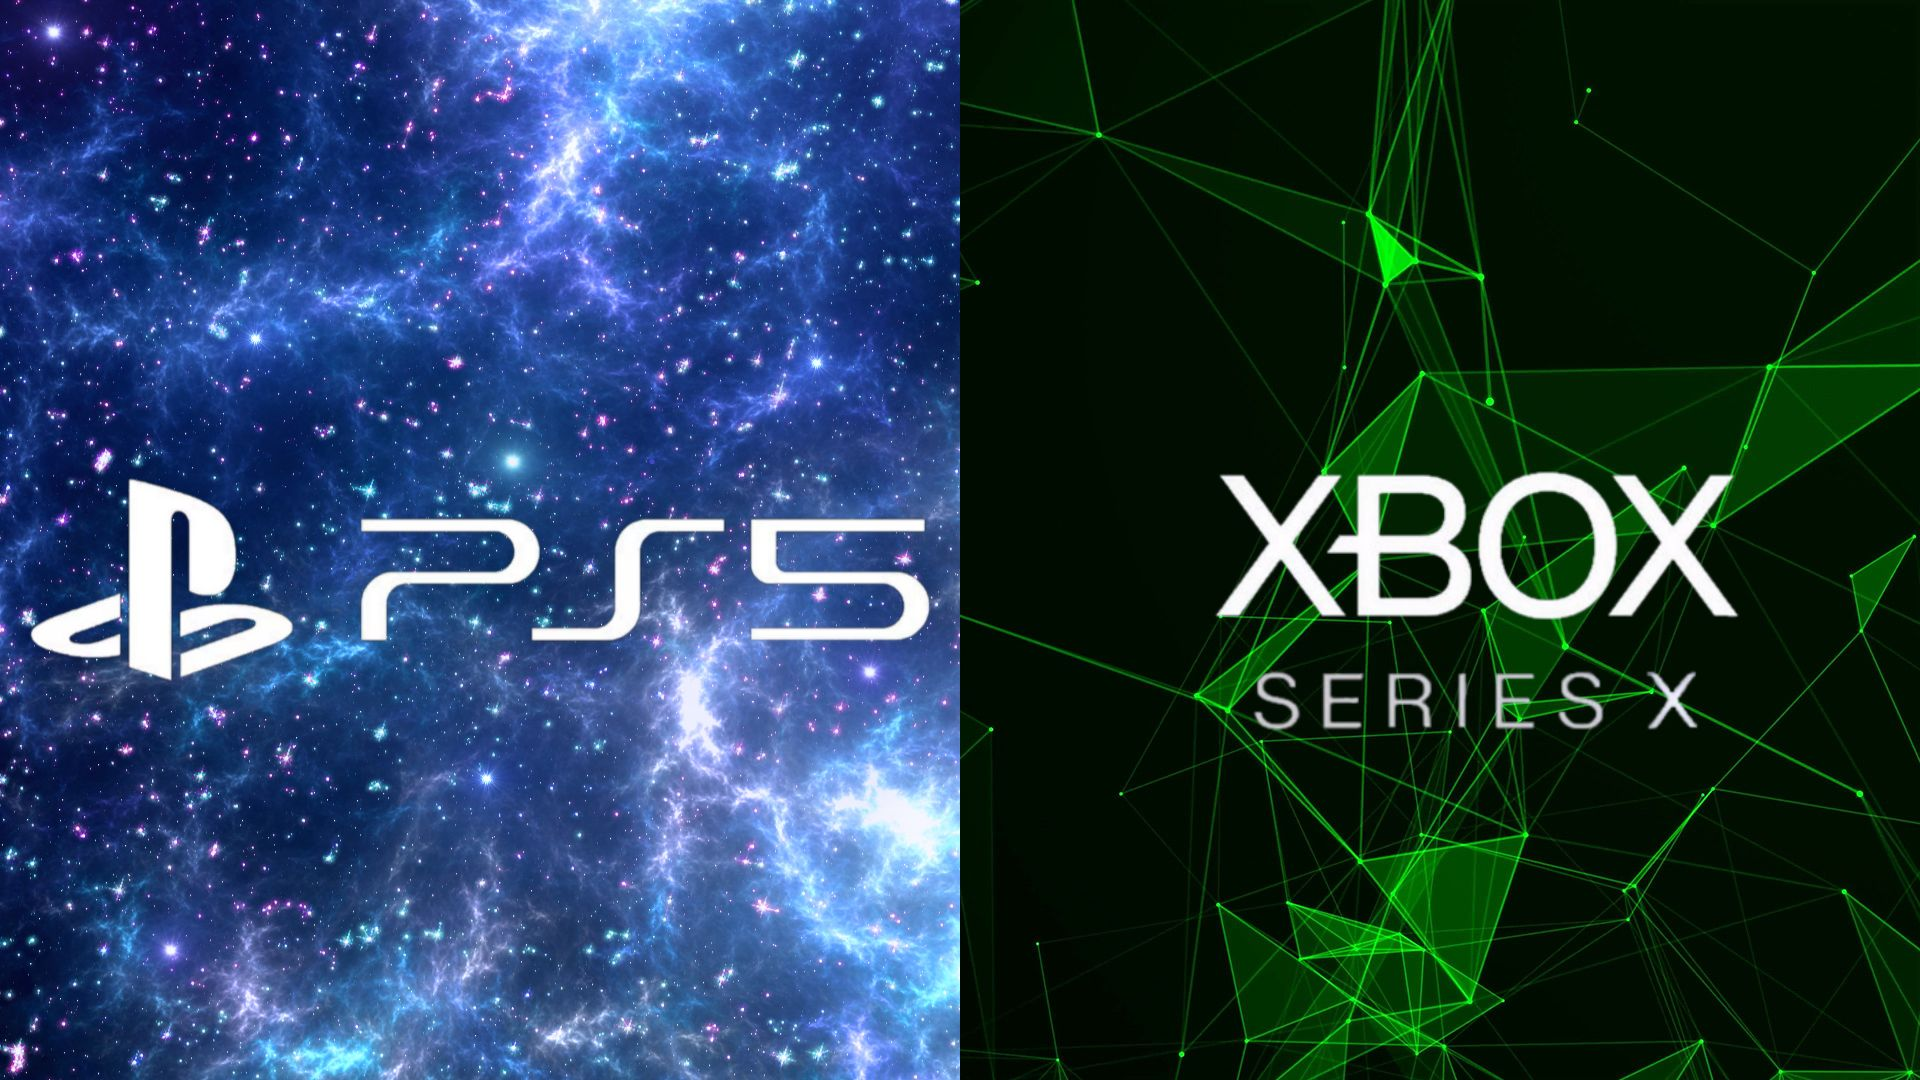 Sony Wants To Reach At Least 120 Million Playstation 5 Distributed Double The Xbox Series X Let S Talk About Video Games